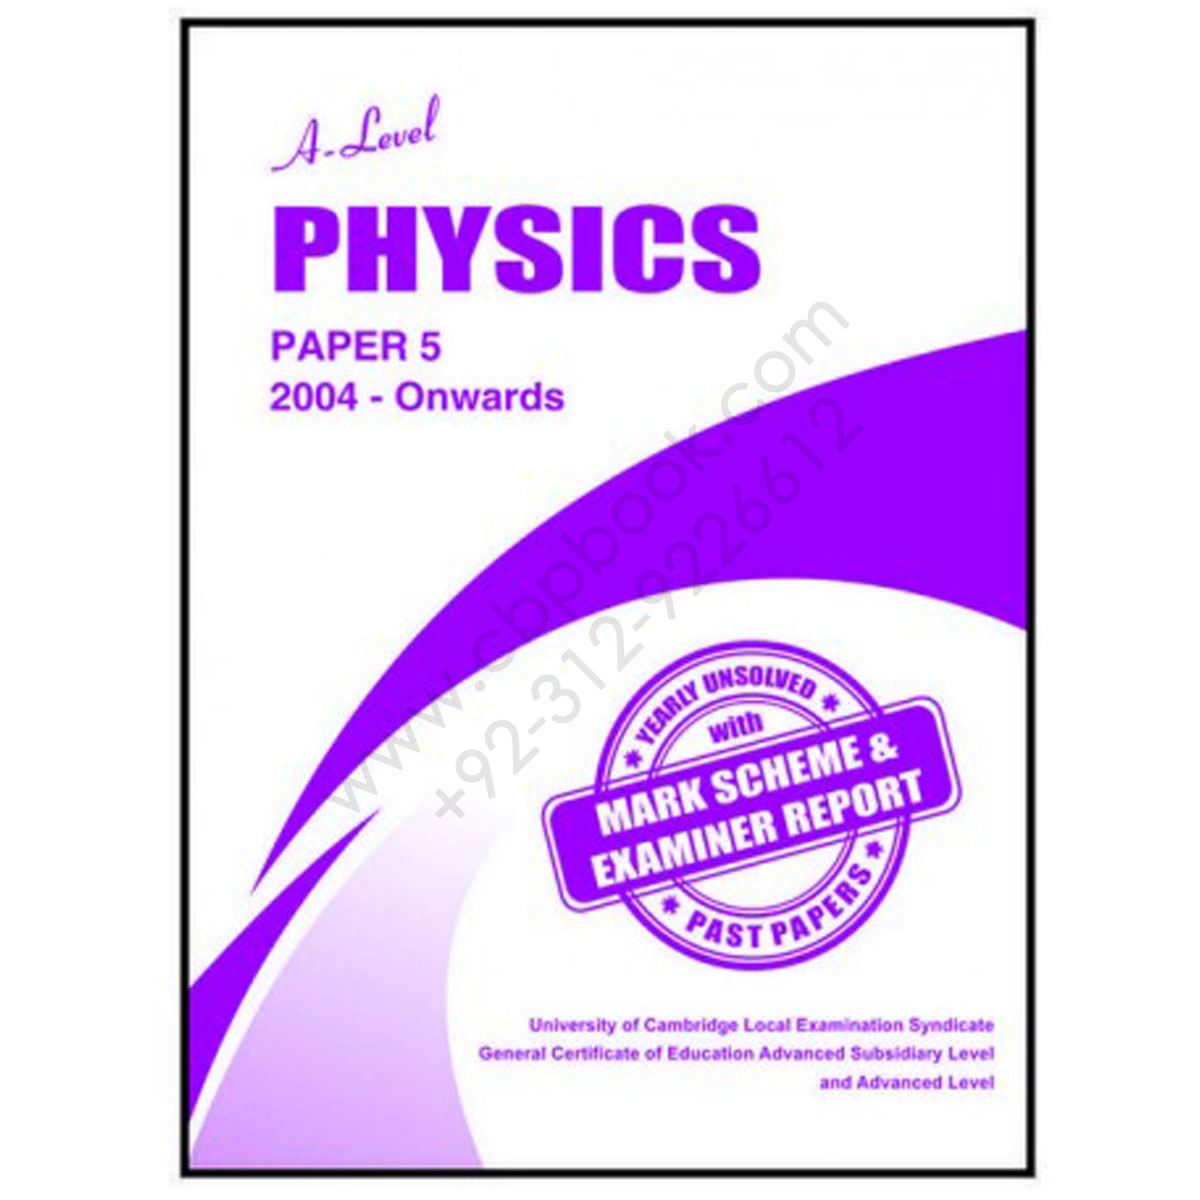 A Level PHYSICS Paper 5 Yearly Unsolved with Mark Scheme From 2005 - Nov  2018